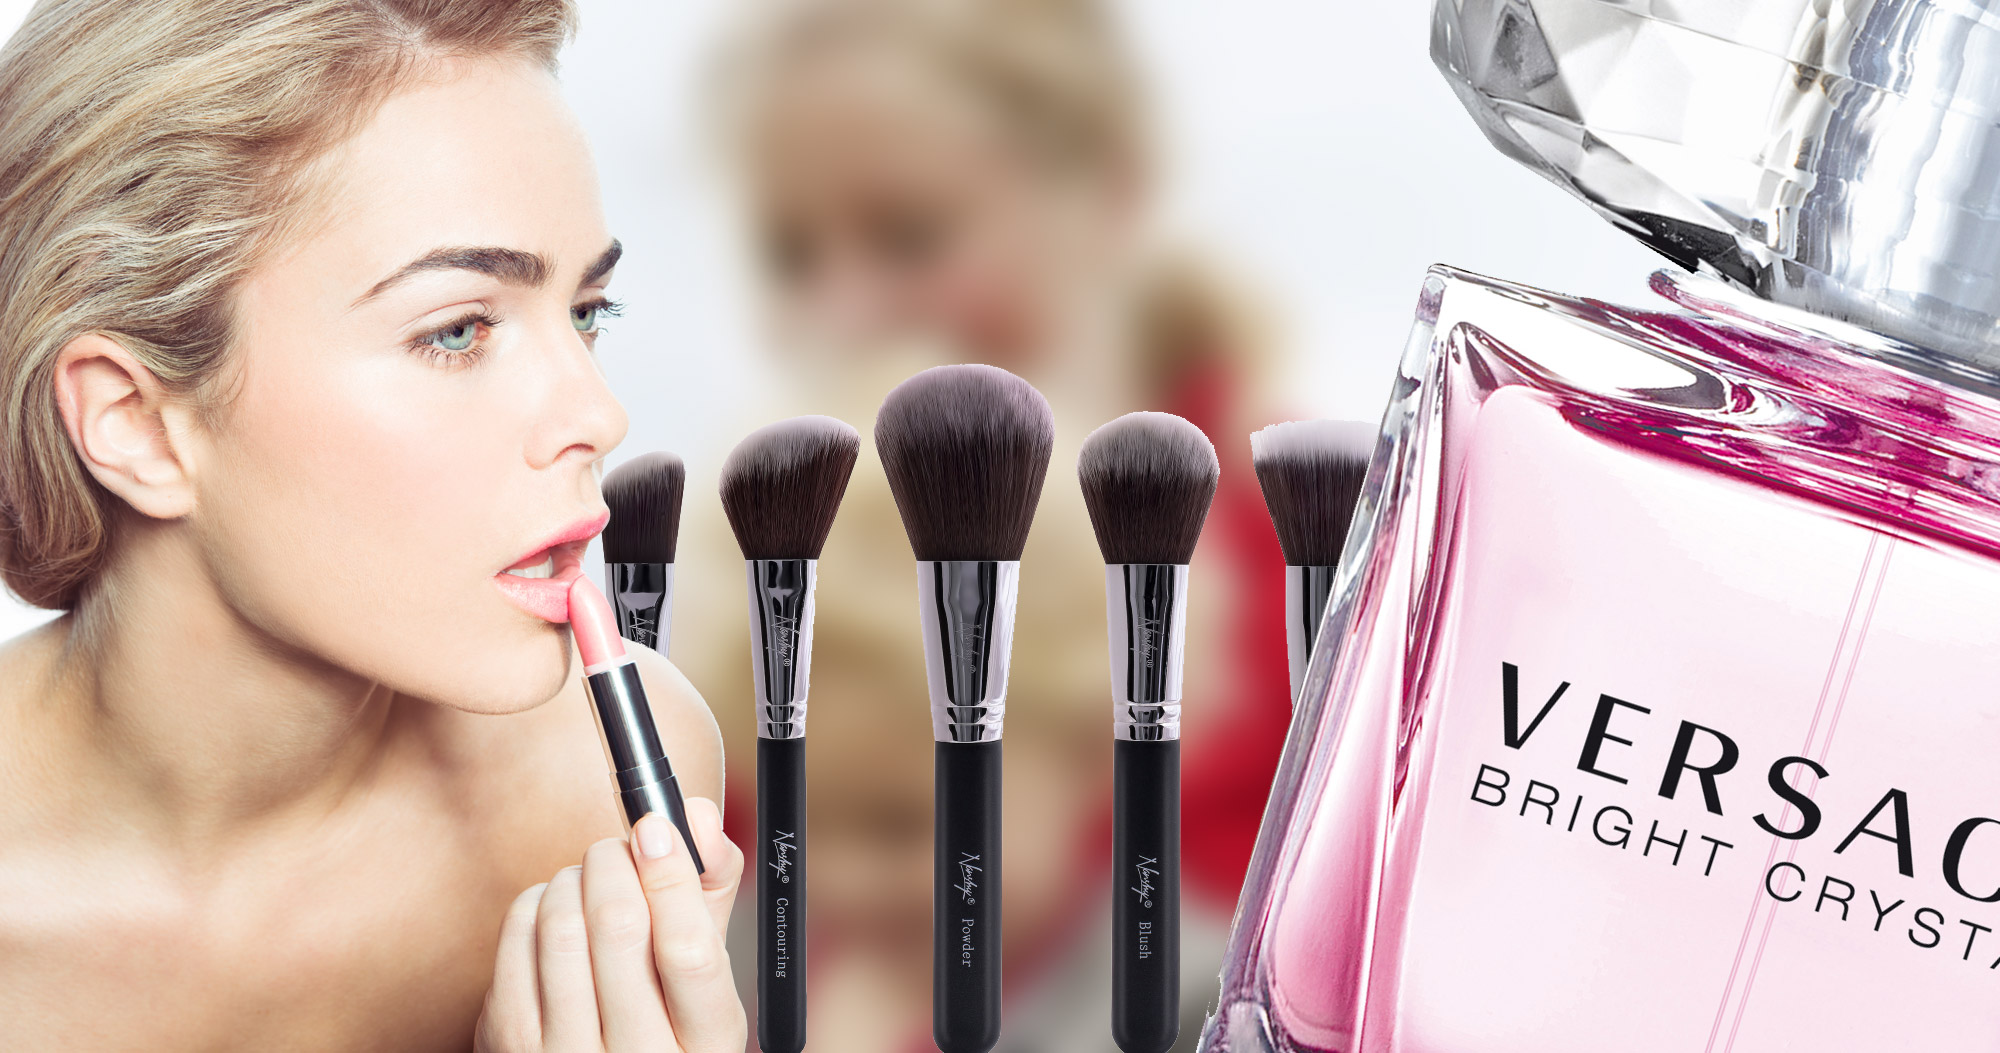 The Luxurious Magazine Mother's Day Beauty Gift Guide